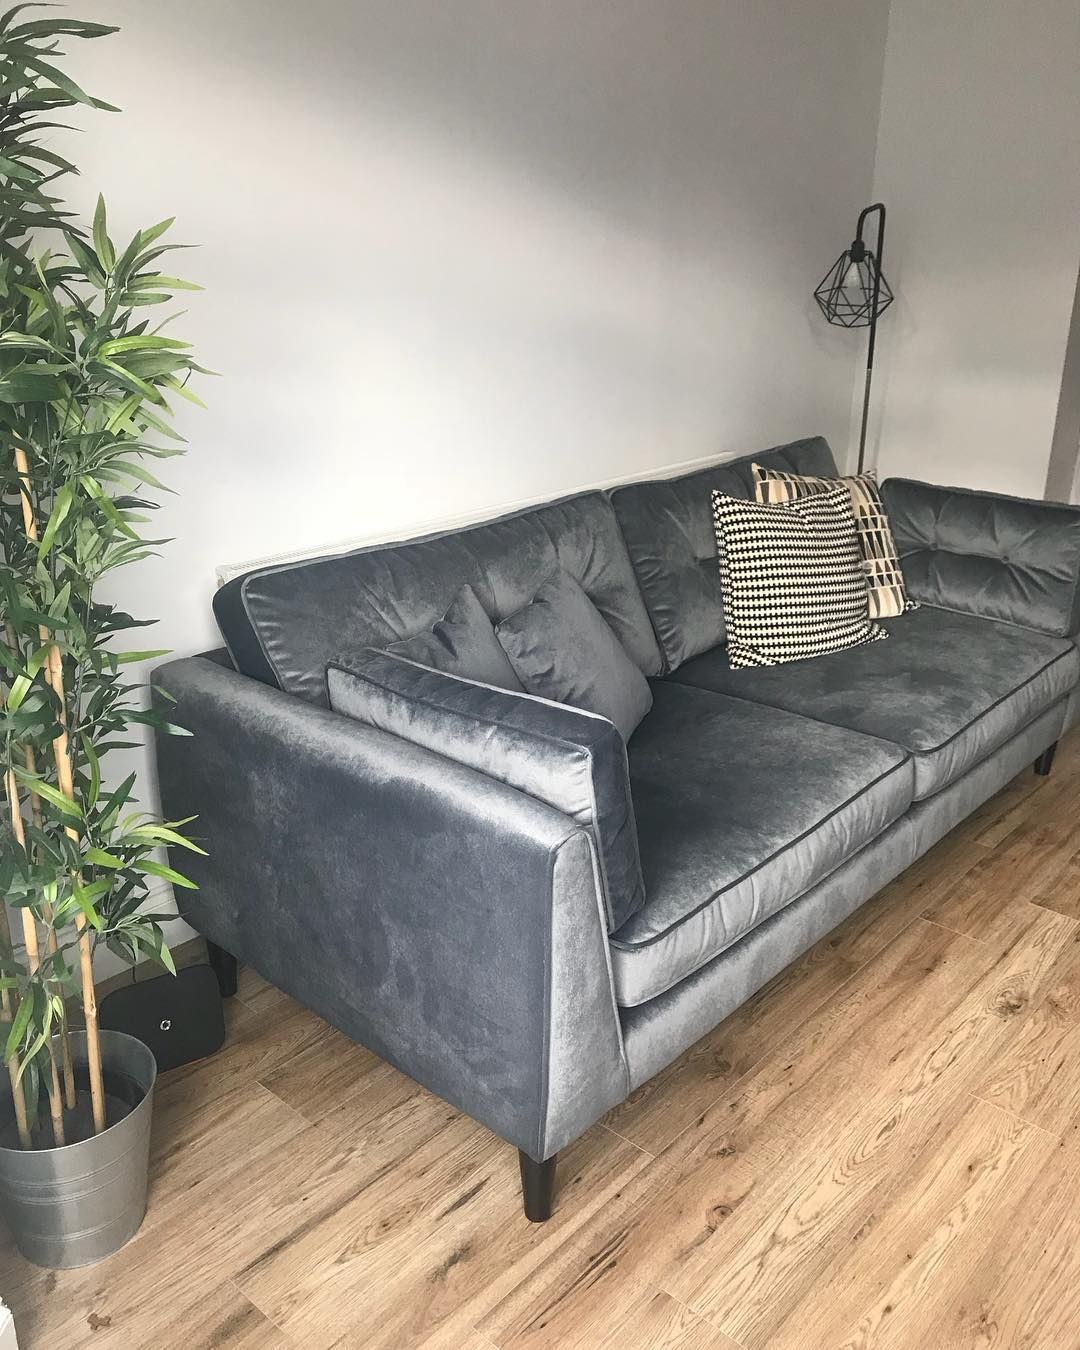 New Sofa Is In Town Absolutely Delighted With Our Sofology Arrival From The Cricket Range In Pewter Super Comfy And Pallet Ideas Easy Sofa Living Room Sofa